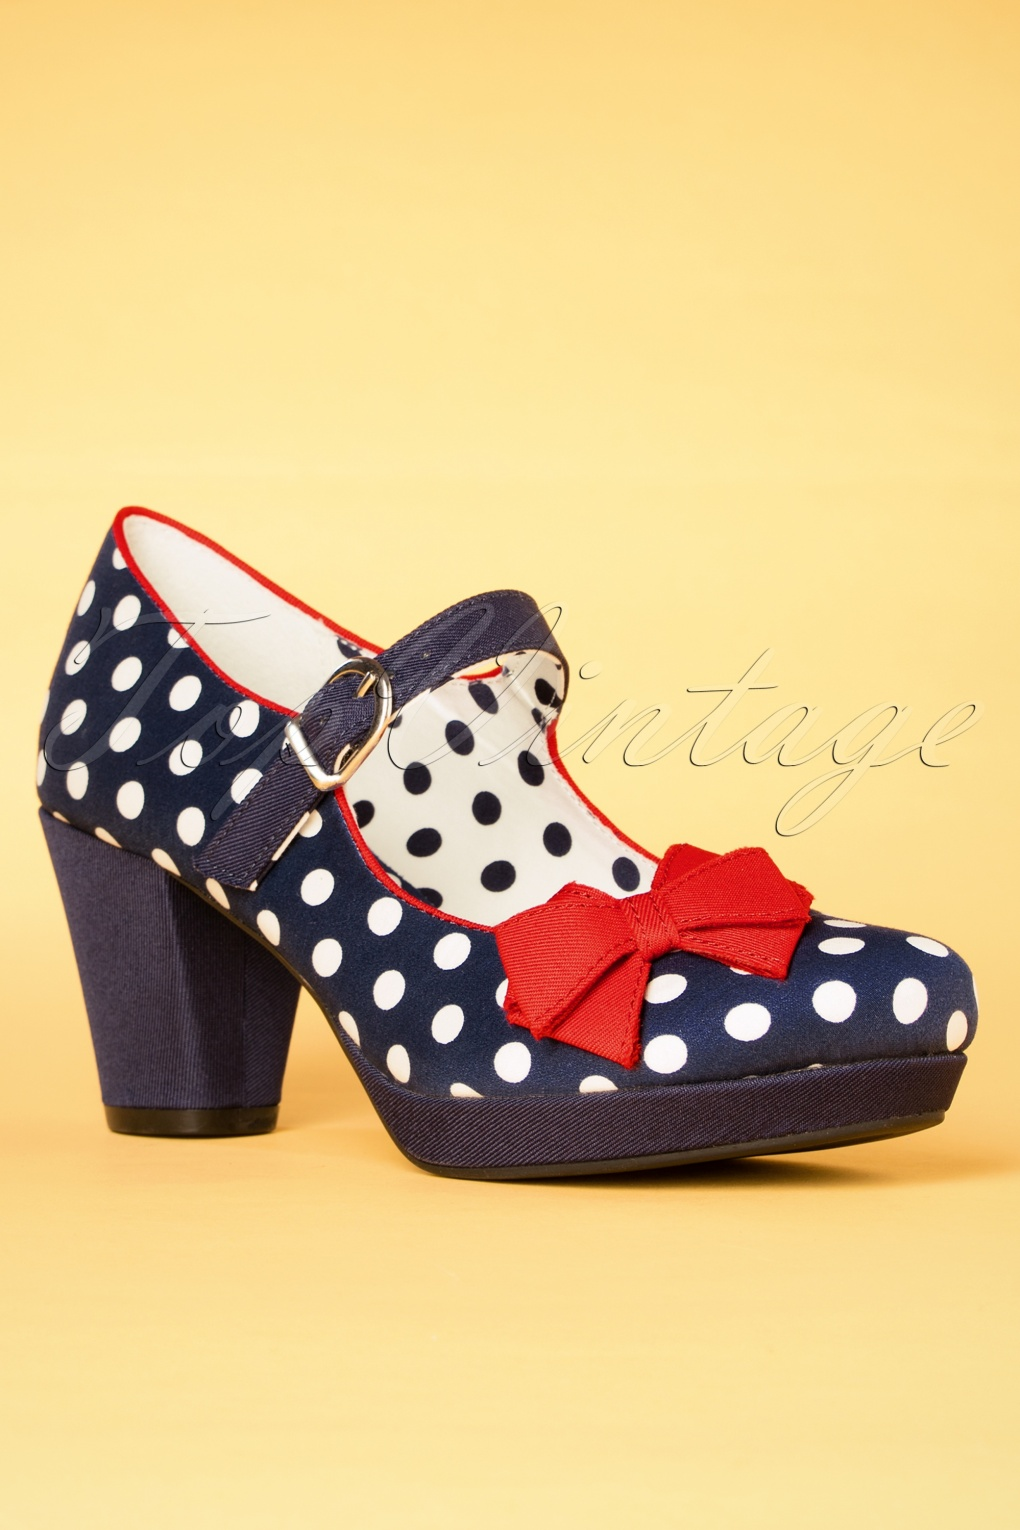 Pin Up Shoes- Heels, Pumps & Flats 60s Crystal Polkadot Pumps in Navy £70.25 AT vintagedancer.com